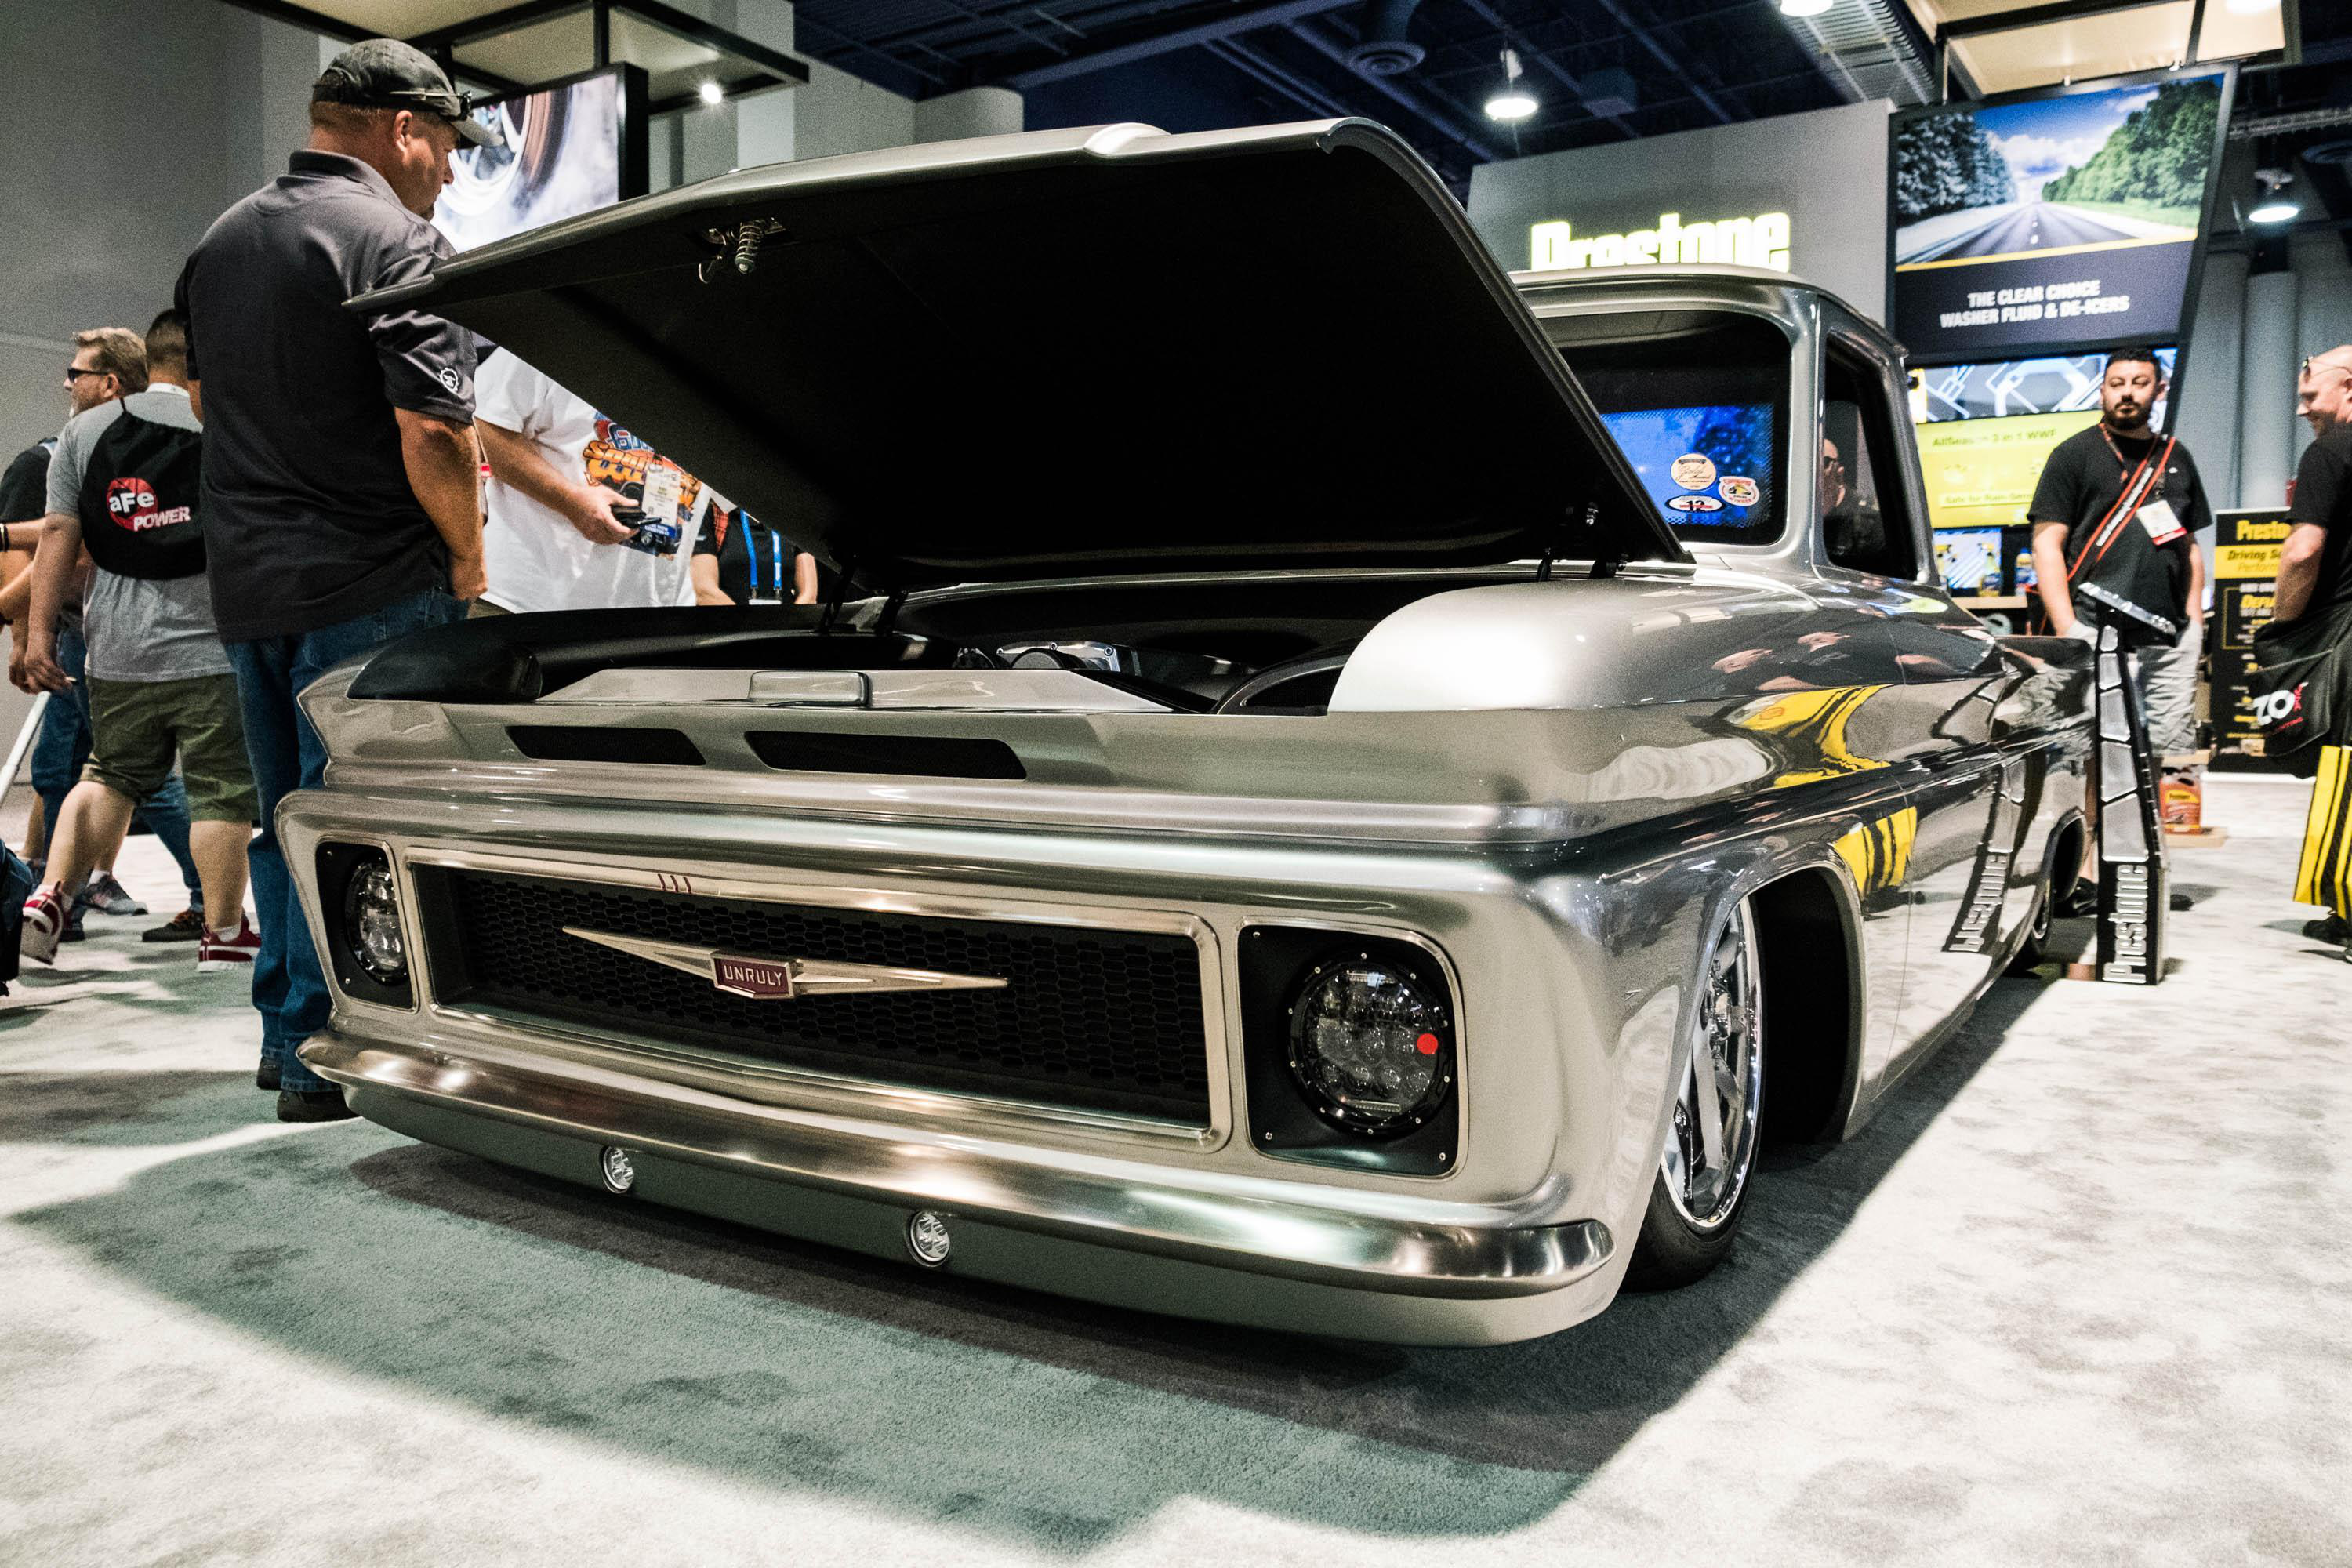 video sema 2017 brings out the best tricked out trucks automotive artistry. Black Bedroom Furniture Sets. Home Design Ideas